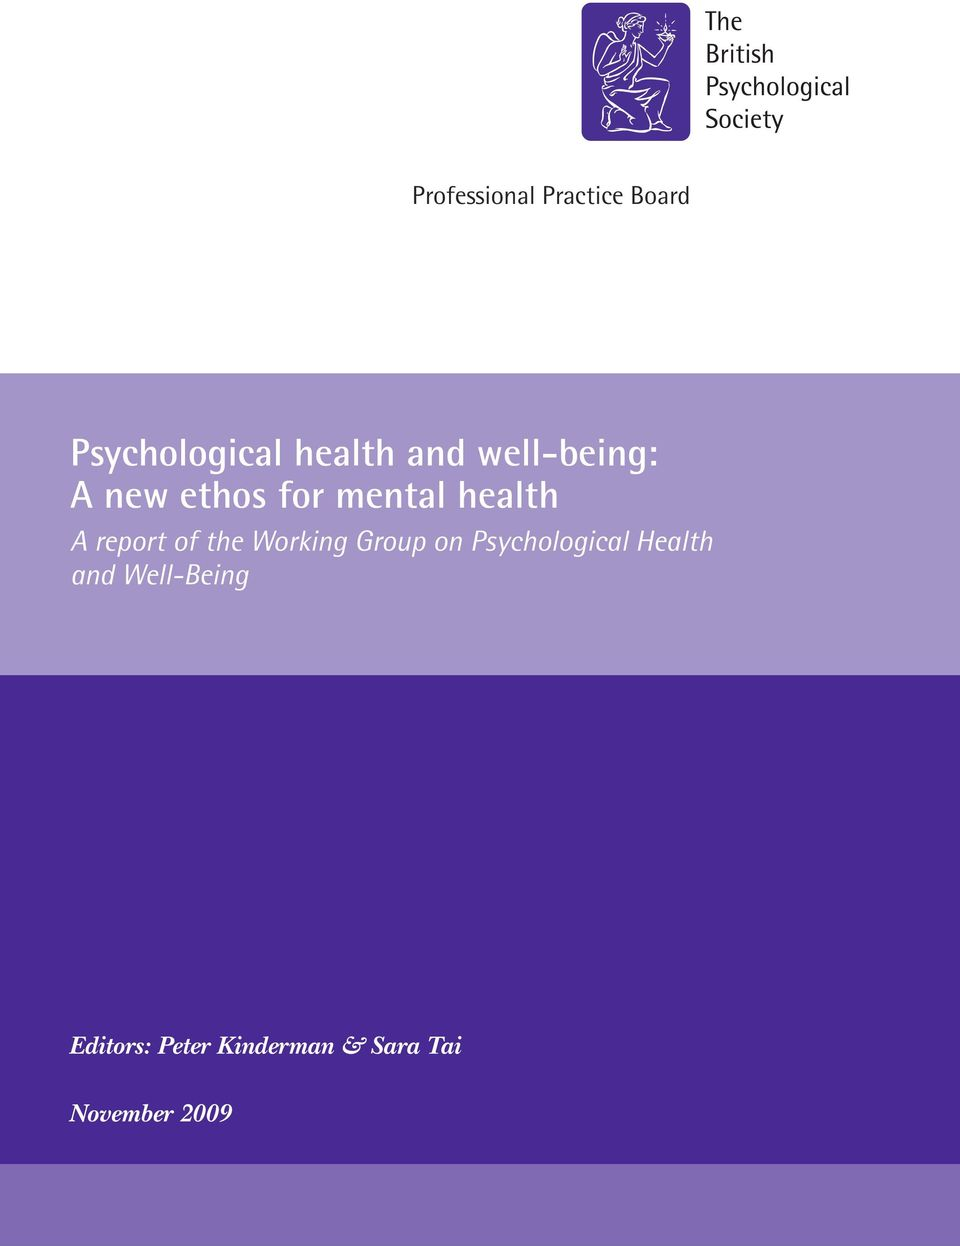 the Working Group on Psychological Health and